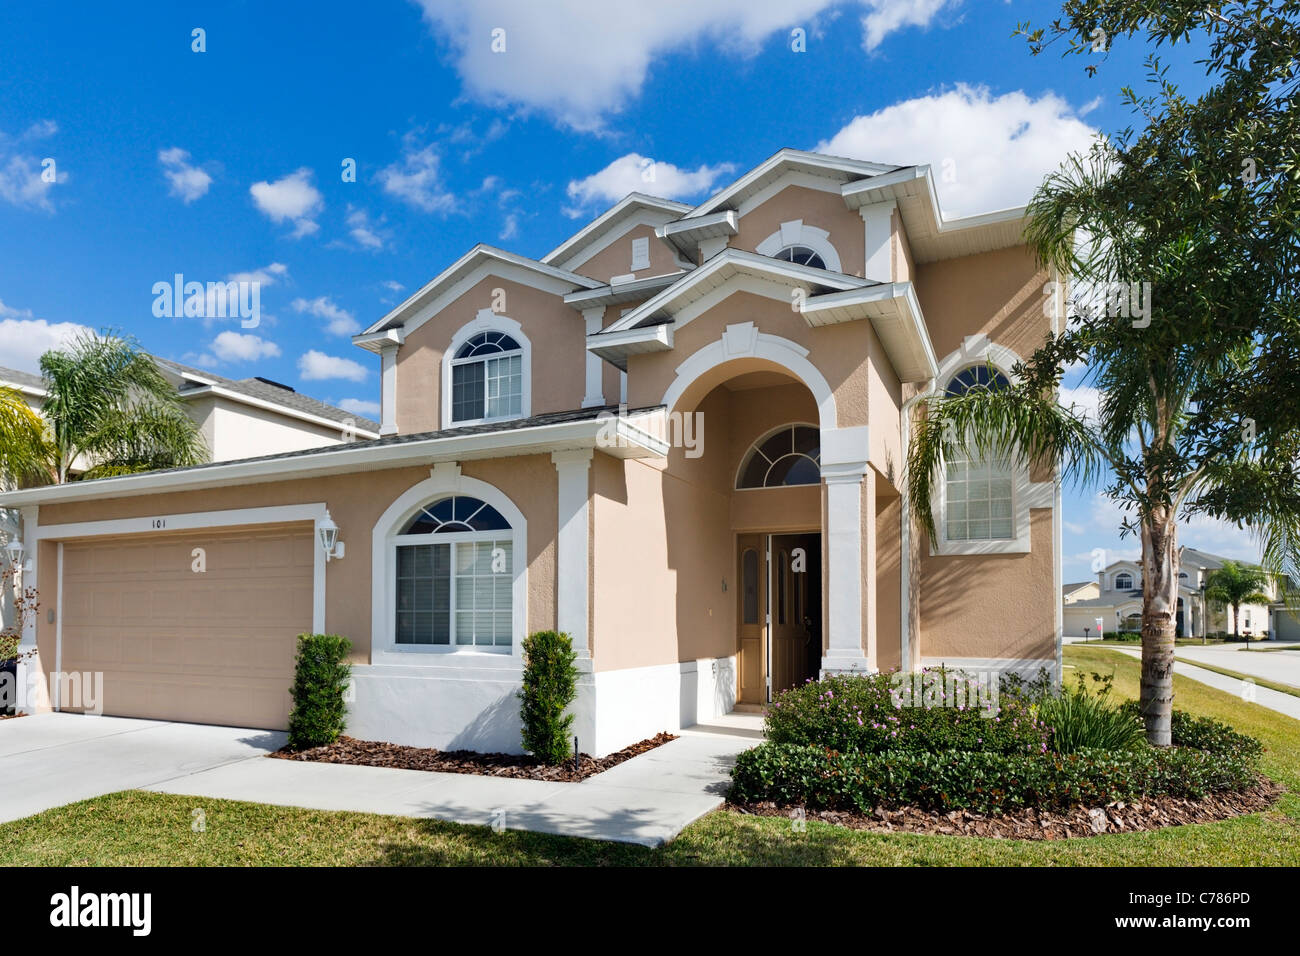 Typical luxury holiday home in West Haven development, Davenport, Kissimmee, Orlando, Florida, USA - Stock Image